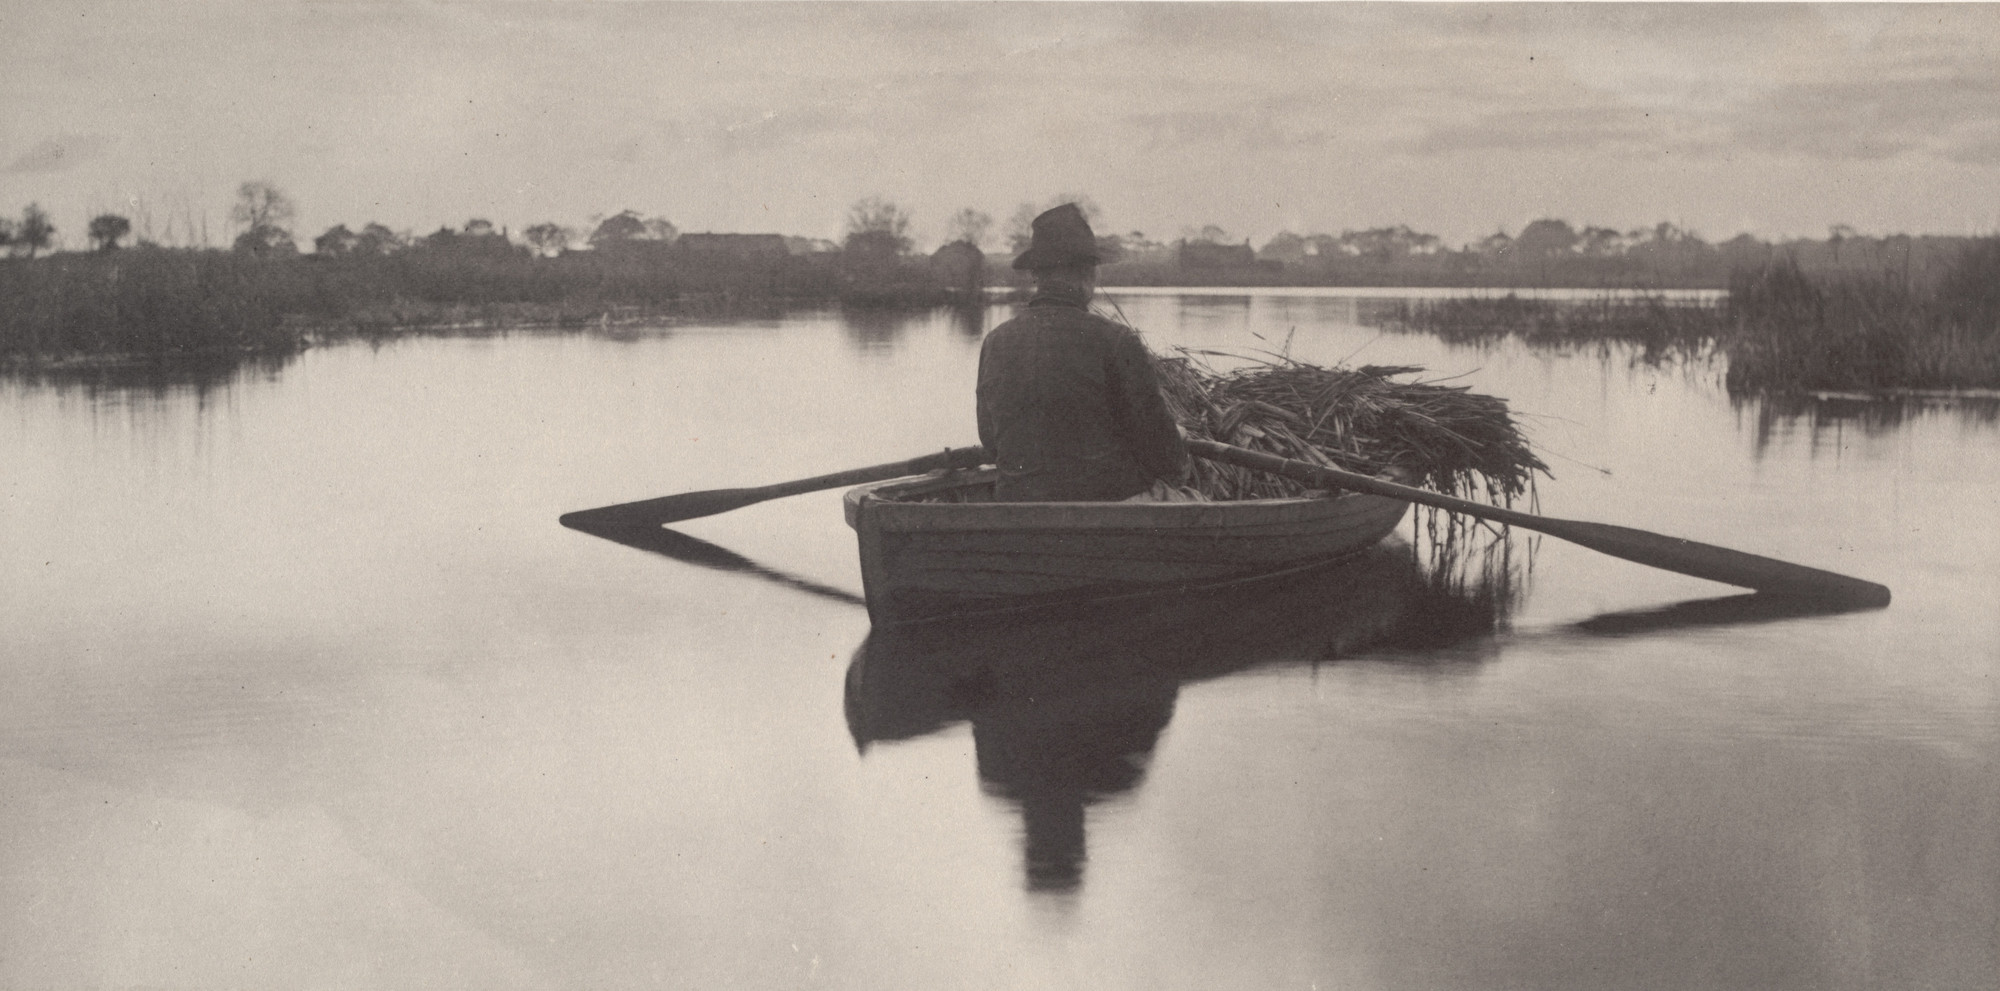 Peter Henry Emerson, T. F. Goodall. Rowing home the Schoof-Stuff from Life and Landscape on the Norfolk Broads (1886). c. 1885